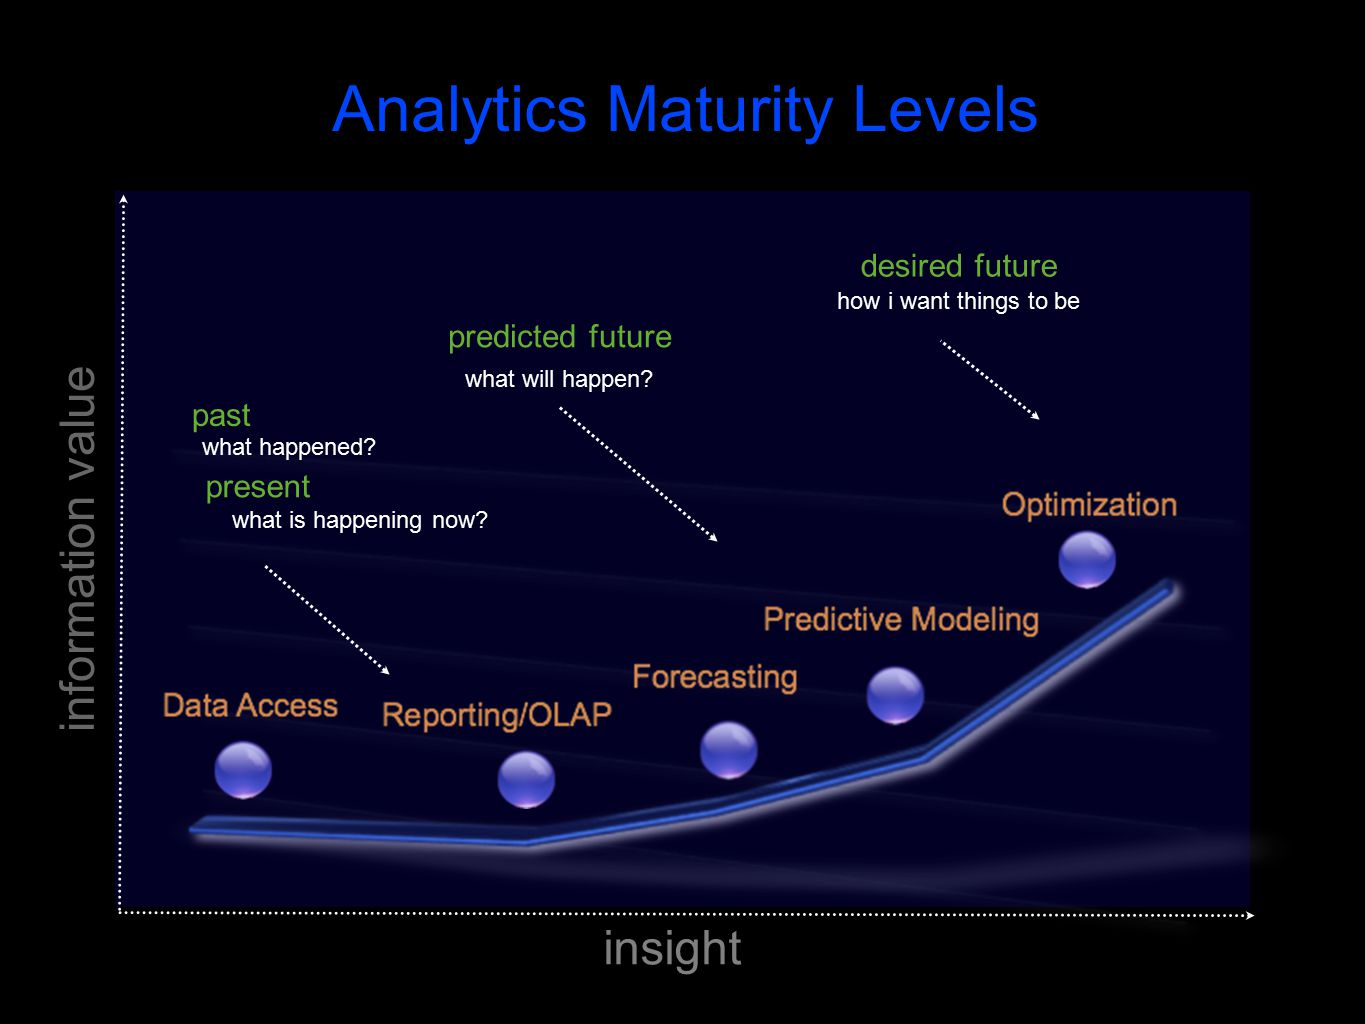 insight information value what happened. past predicted future what will happen.